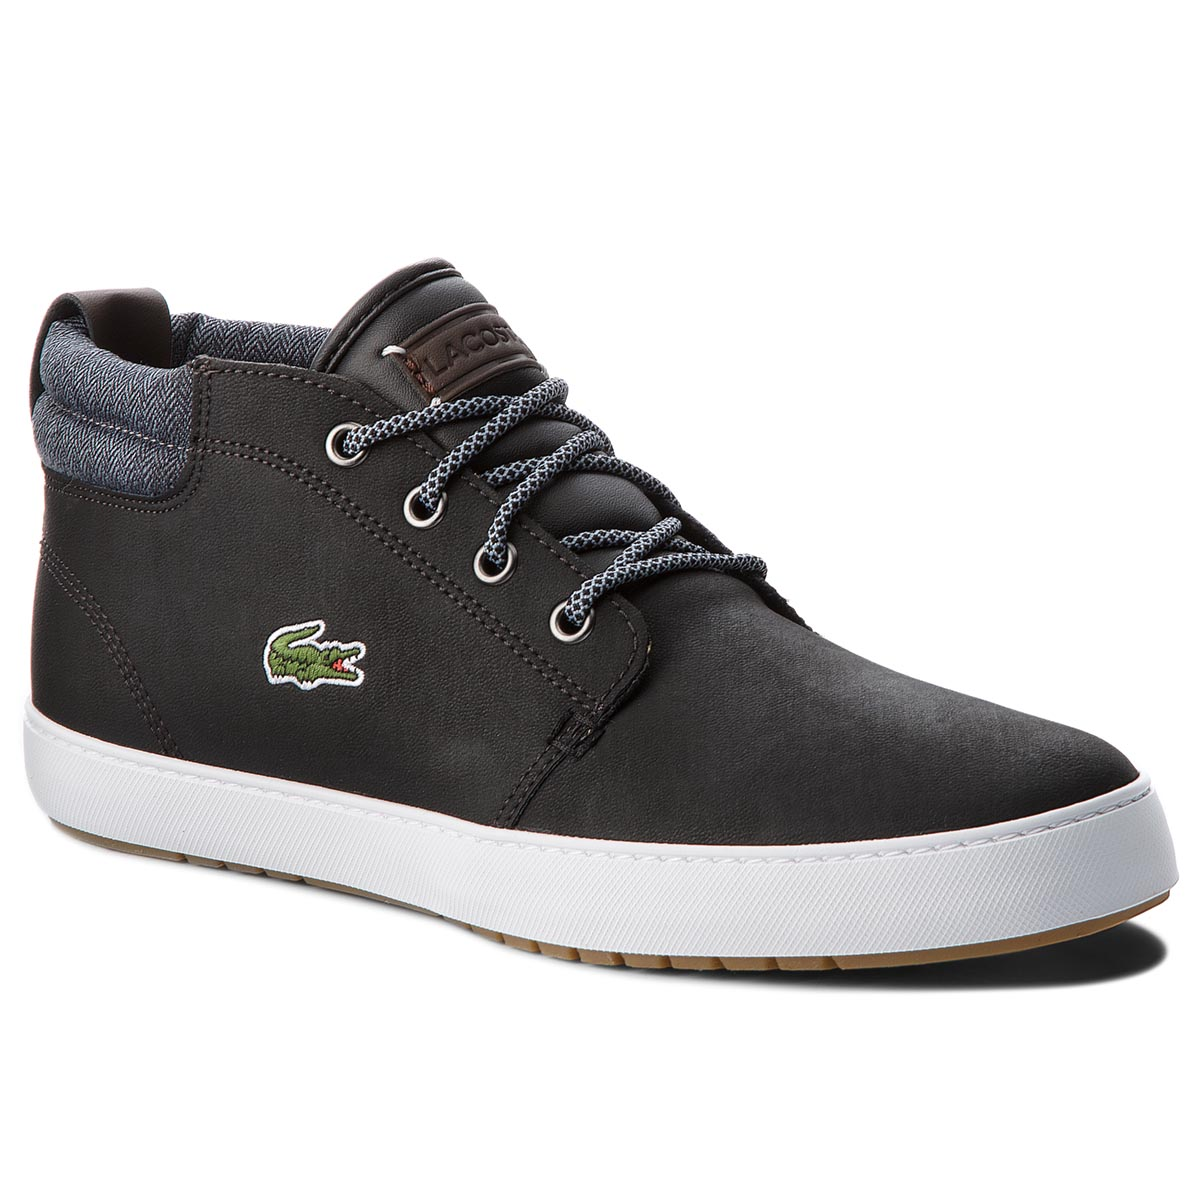 Sneakersy LACOSTE - Ampthill Terra 318 1 Cam 7-36CAM0005231 Blk/Gry